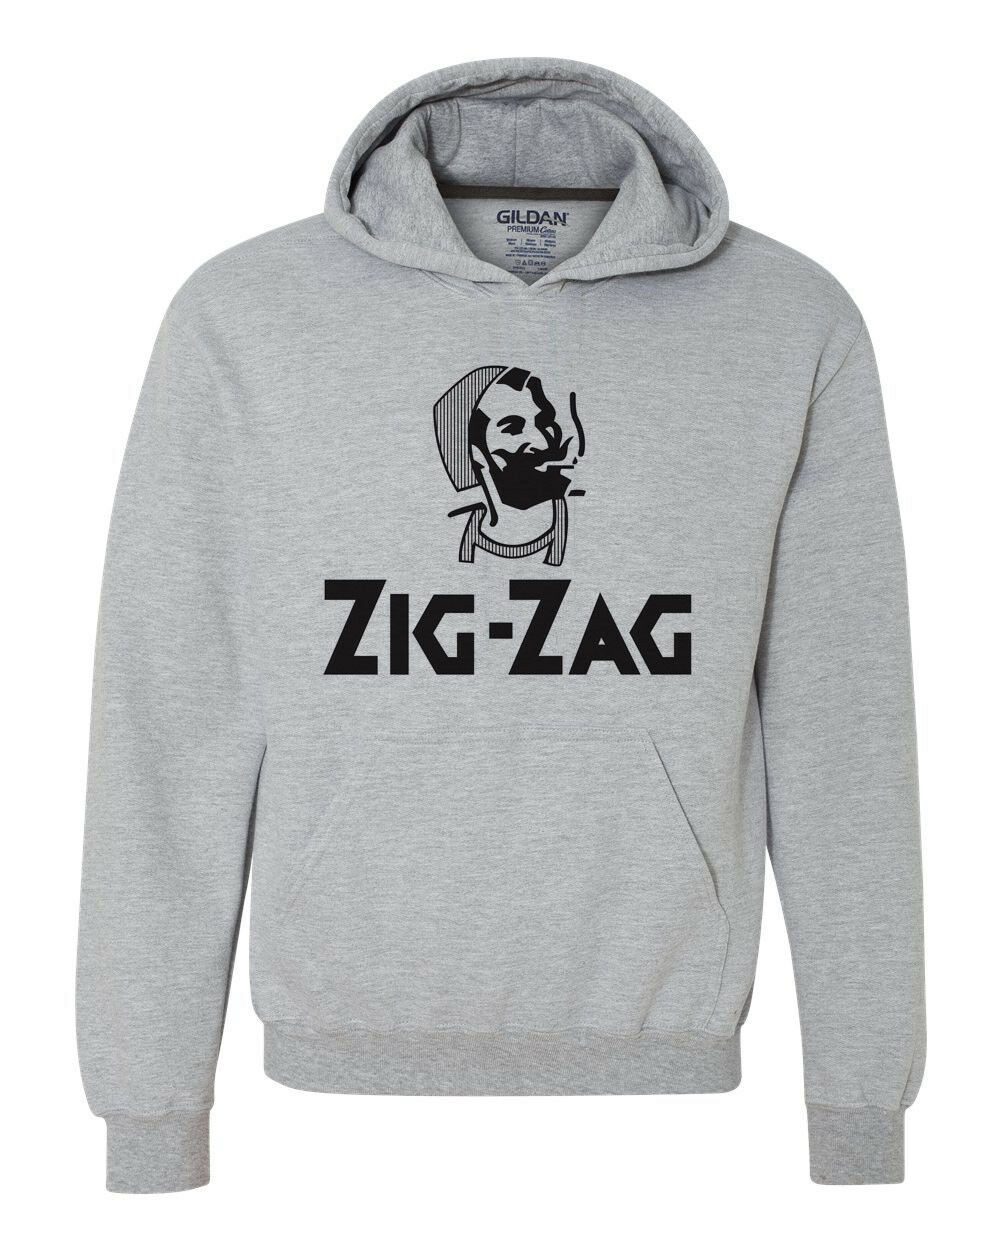 Zig-Zag cigarette rolling papers hooded graphic hoodie pot weed retro vintage